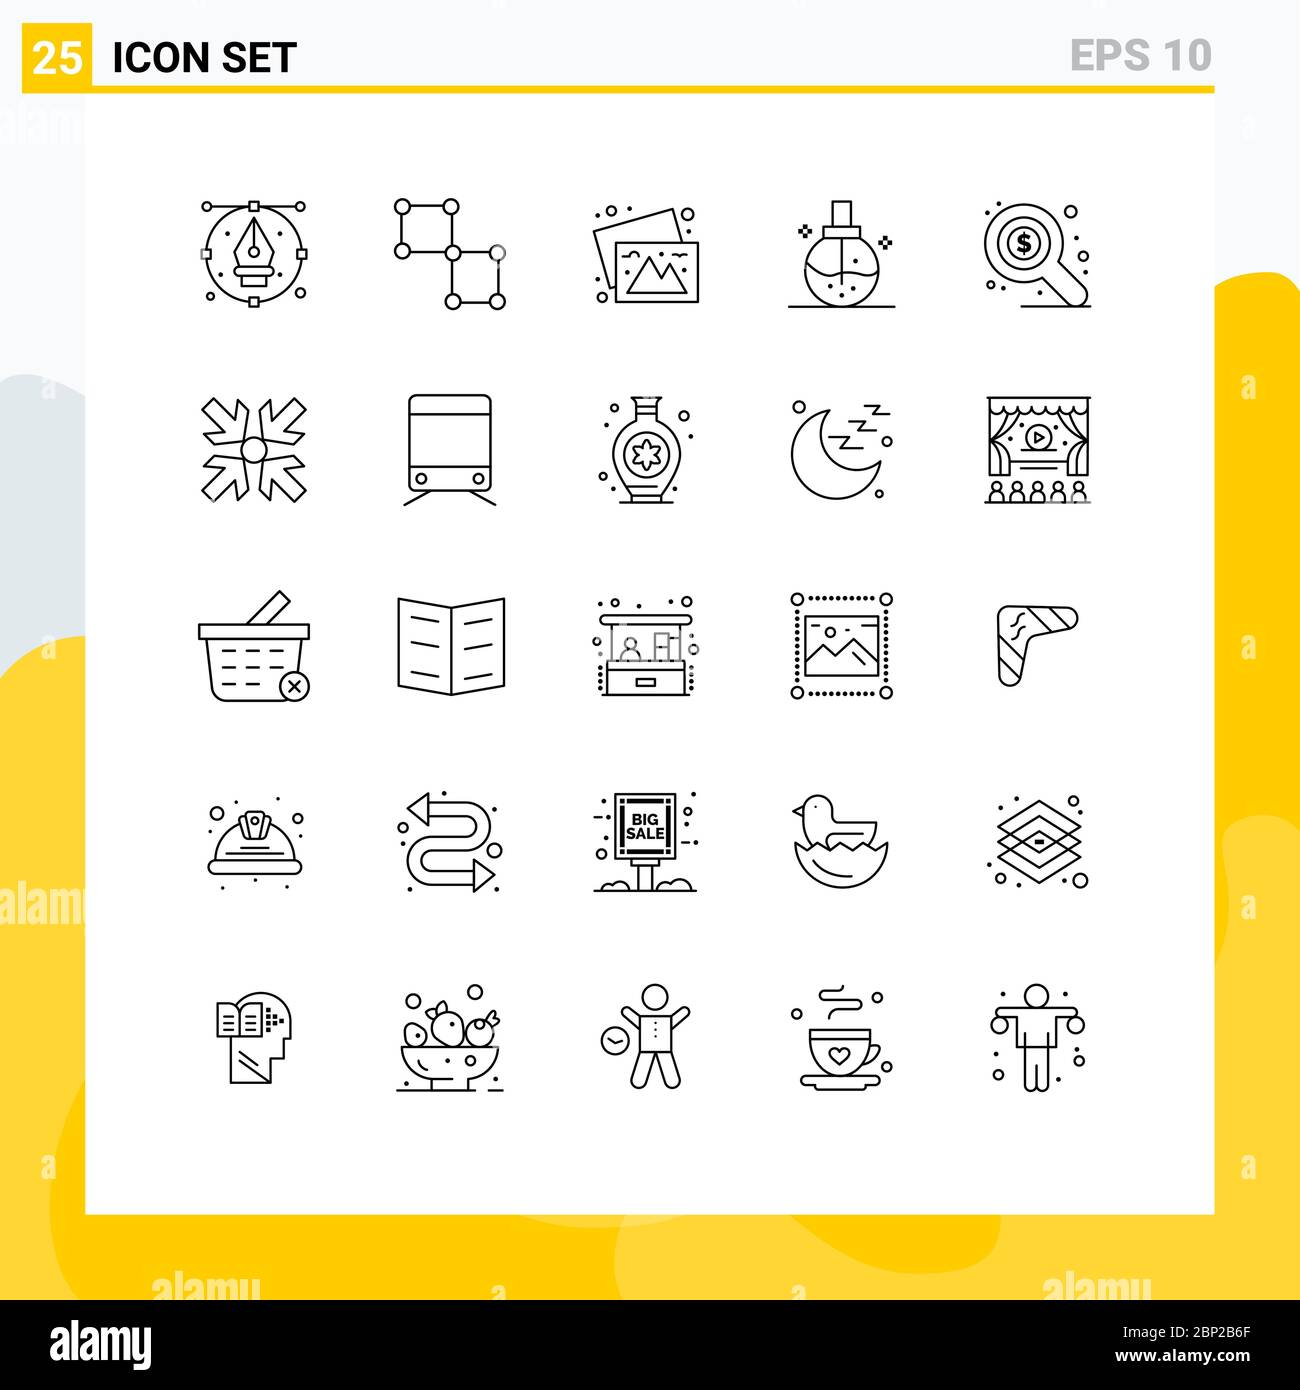 25 Universal Line Signs Symbols Of Perfume Fashion Space Care Images Editable Vector Design Elements Stock Vector Art Illustration Vector Image 357782503 Alamy